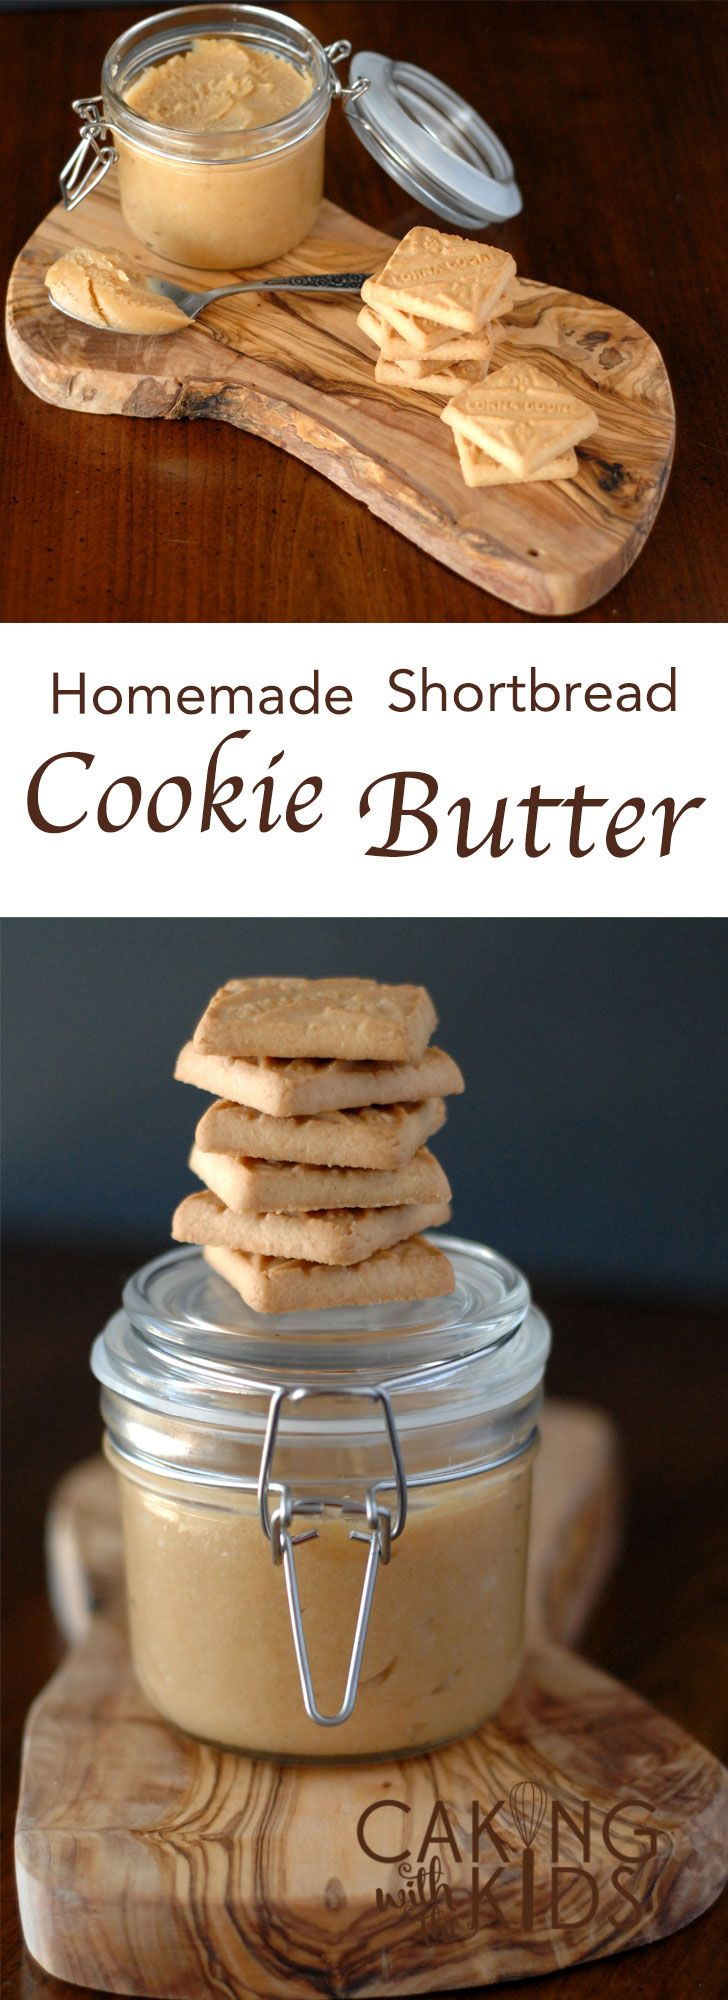 How to make a Homemade Cookie Butter with shortbread Lorna Doone Cookies. A deliciously versatile recipe.  via @Caking with the Kids